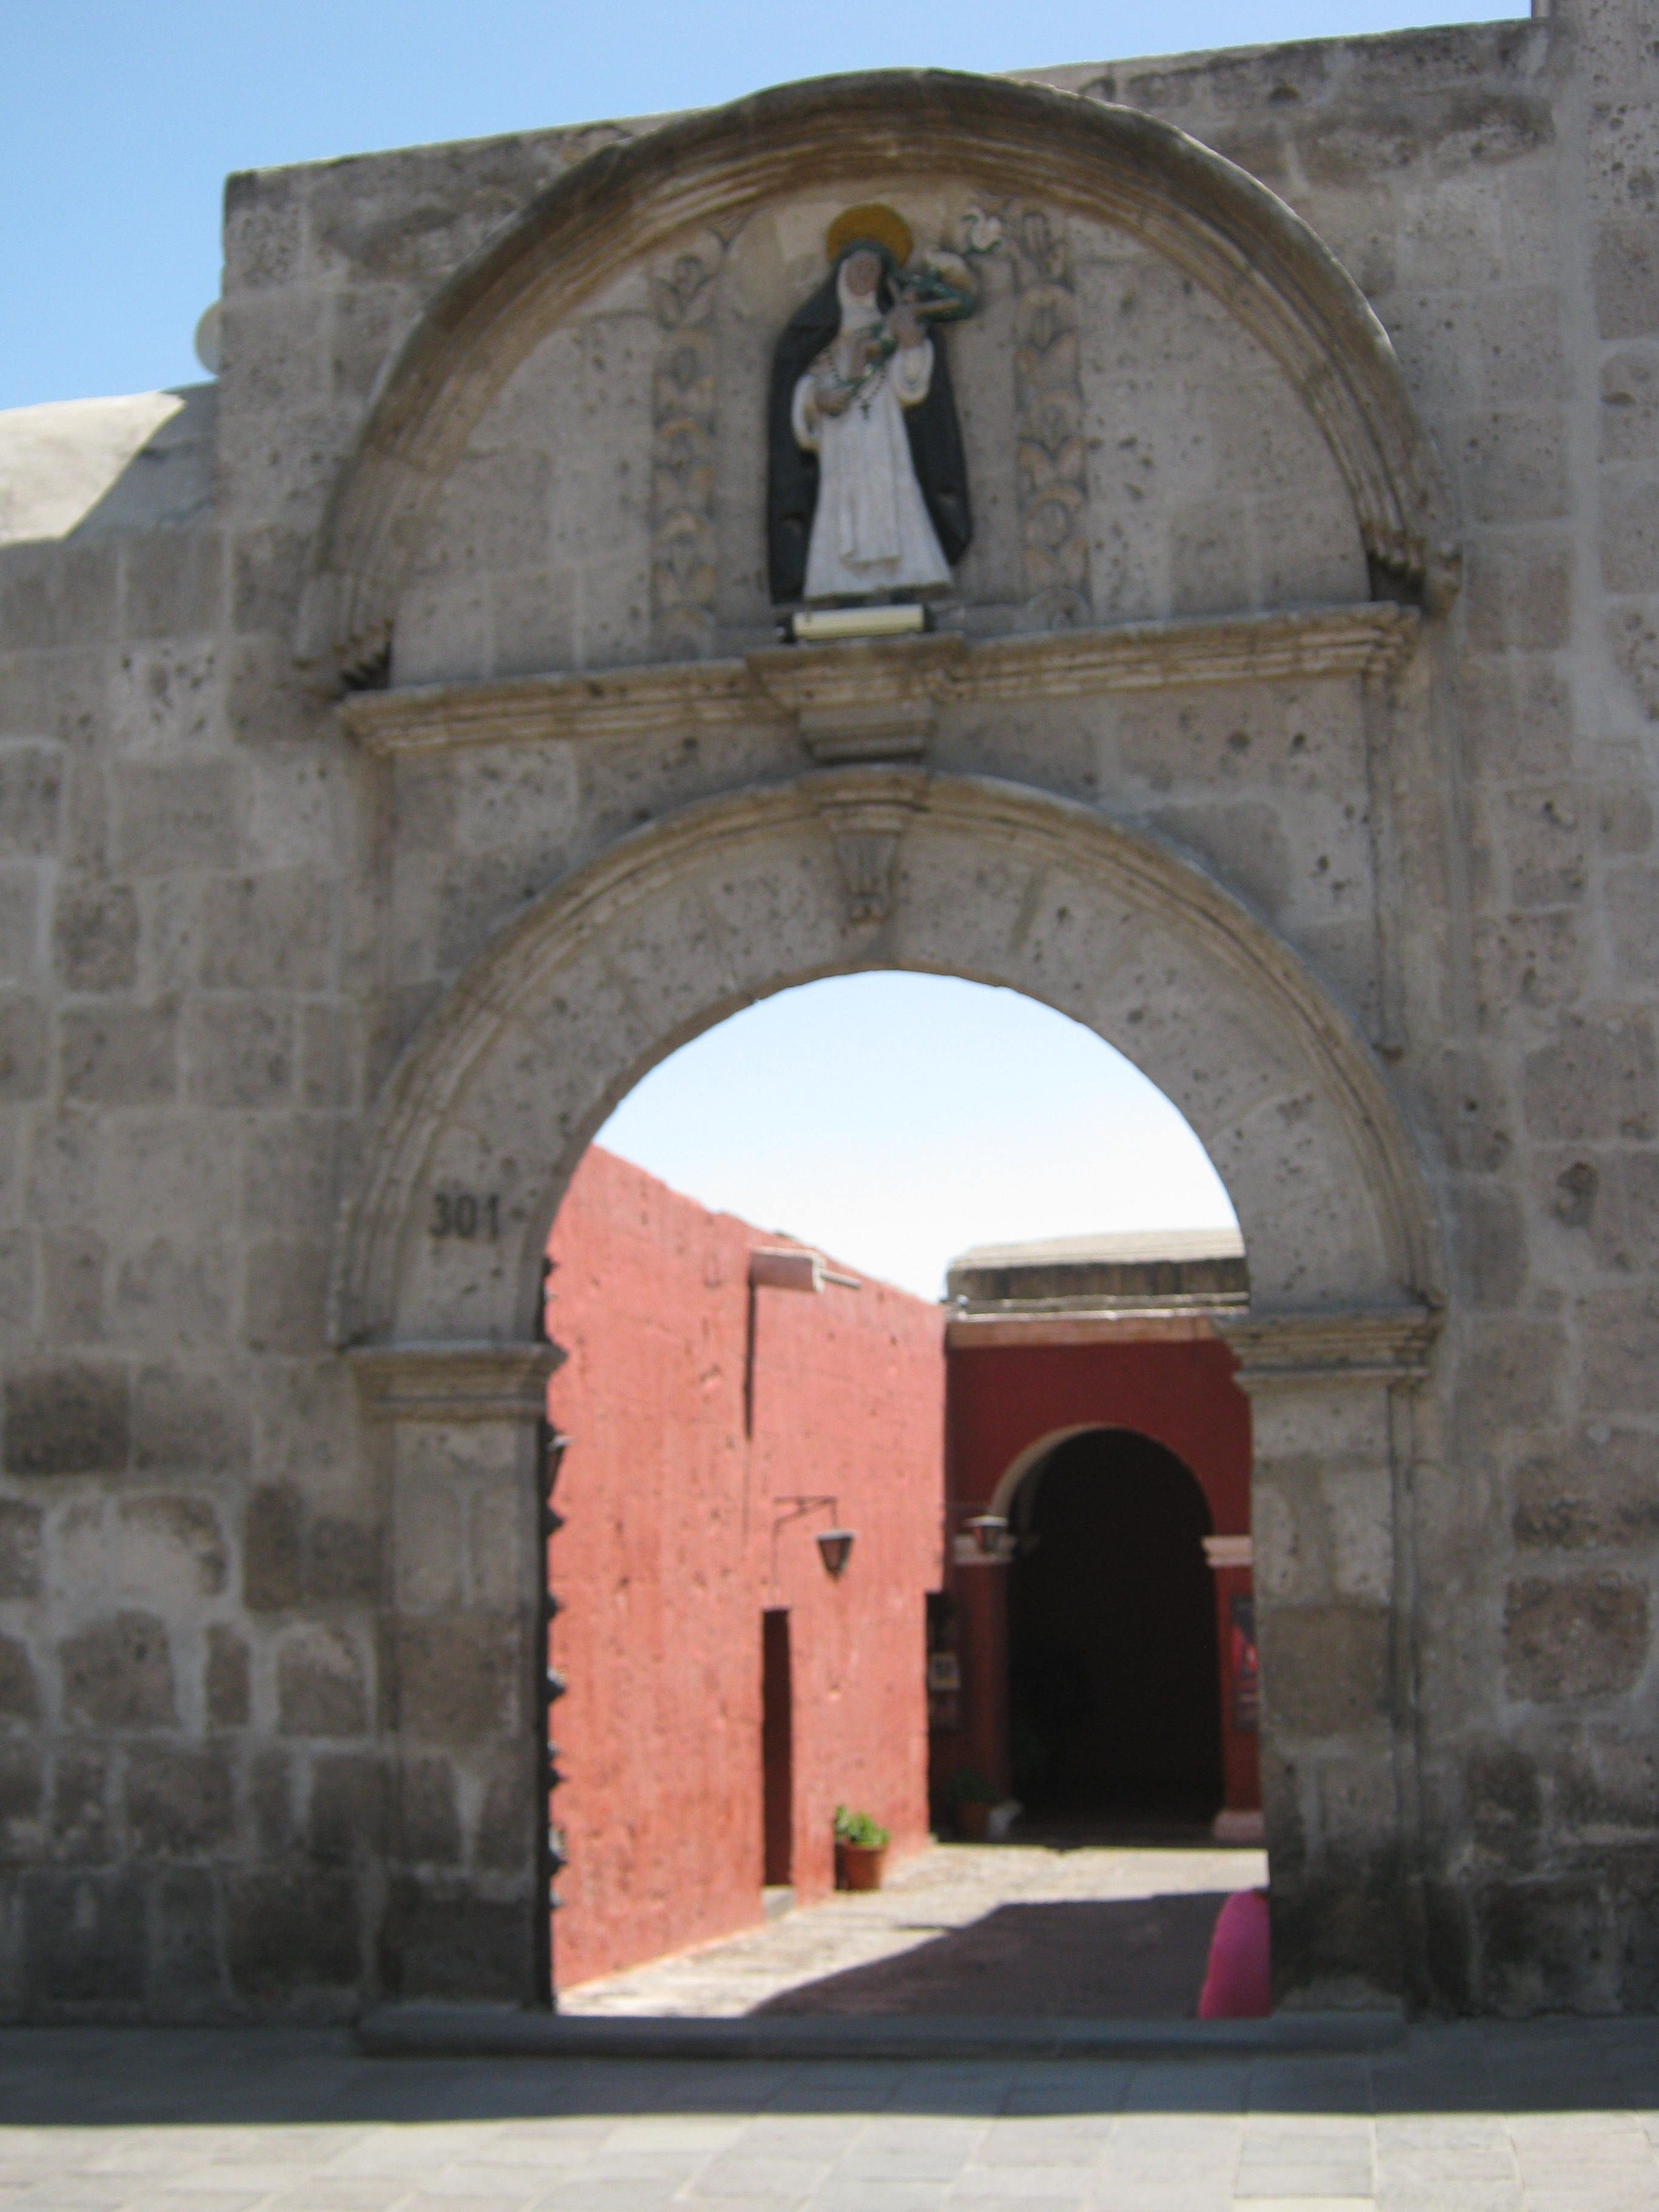 The Monasterio de Santa Catalina in Arequipa Peru is believed to be inhabited by vampires just posing as nuns, truly!